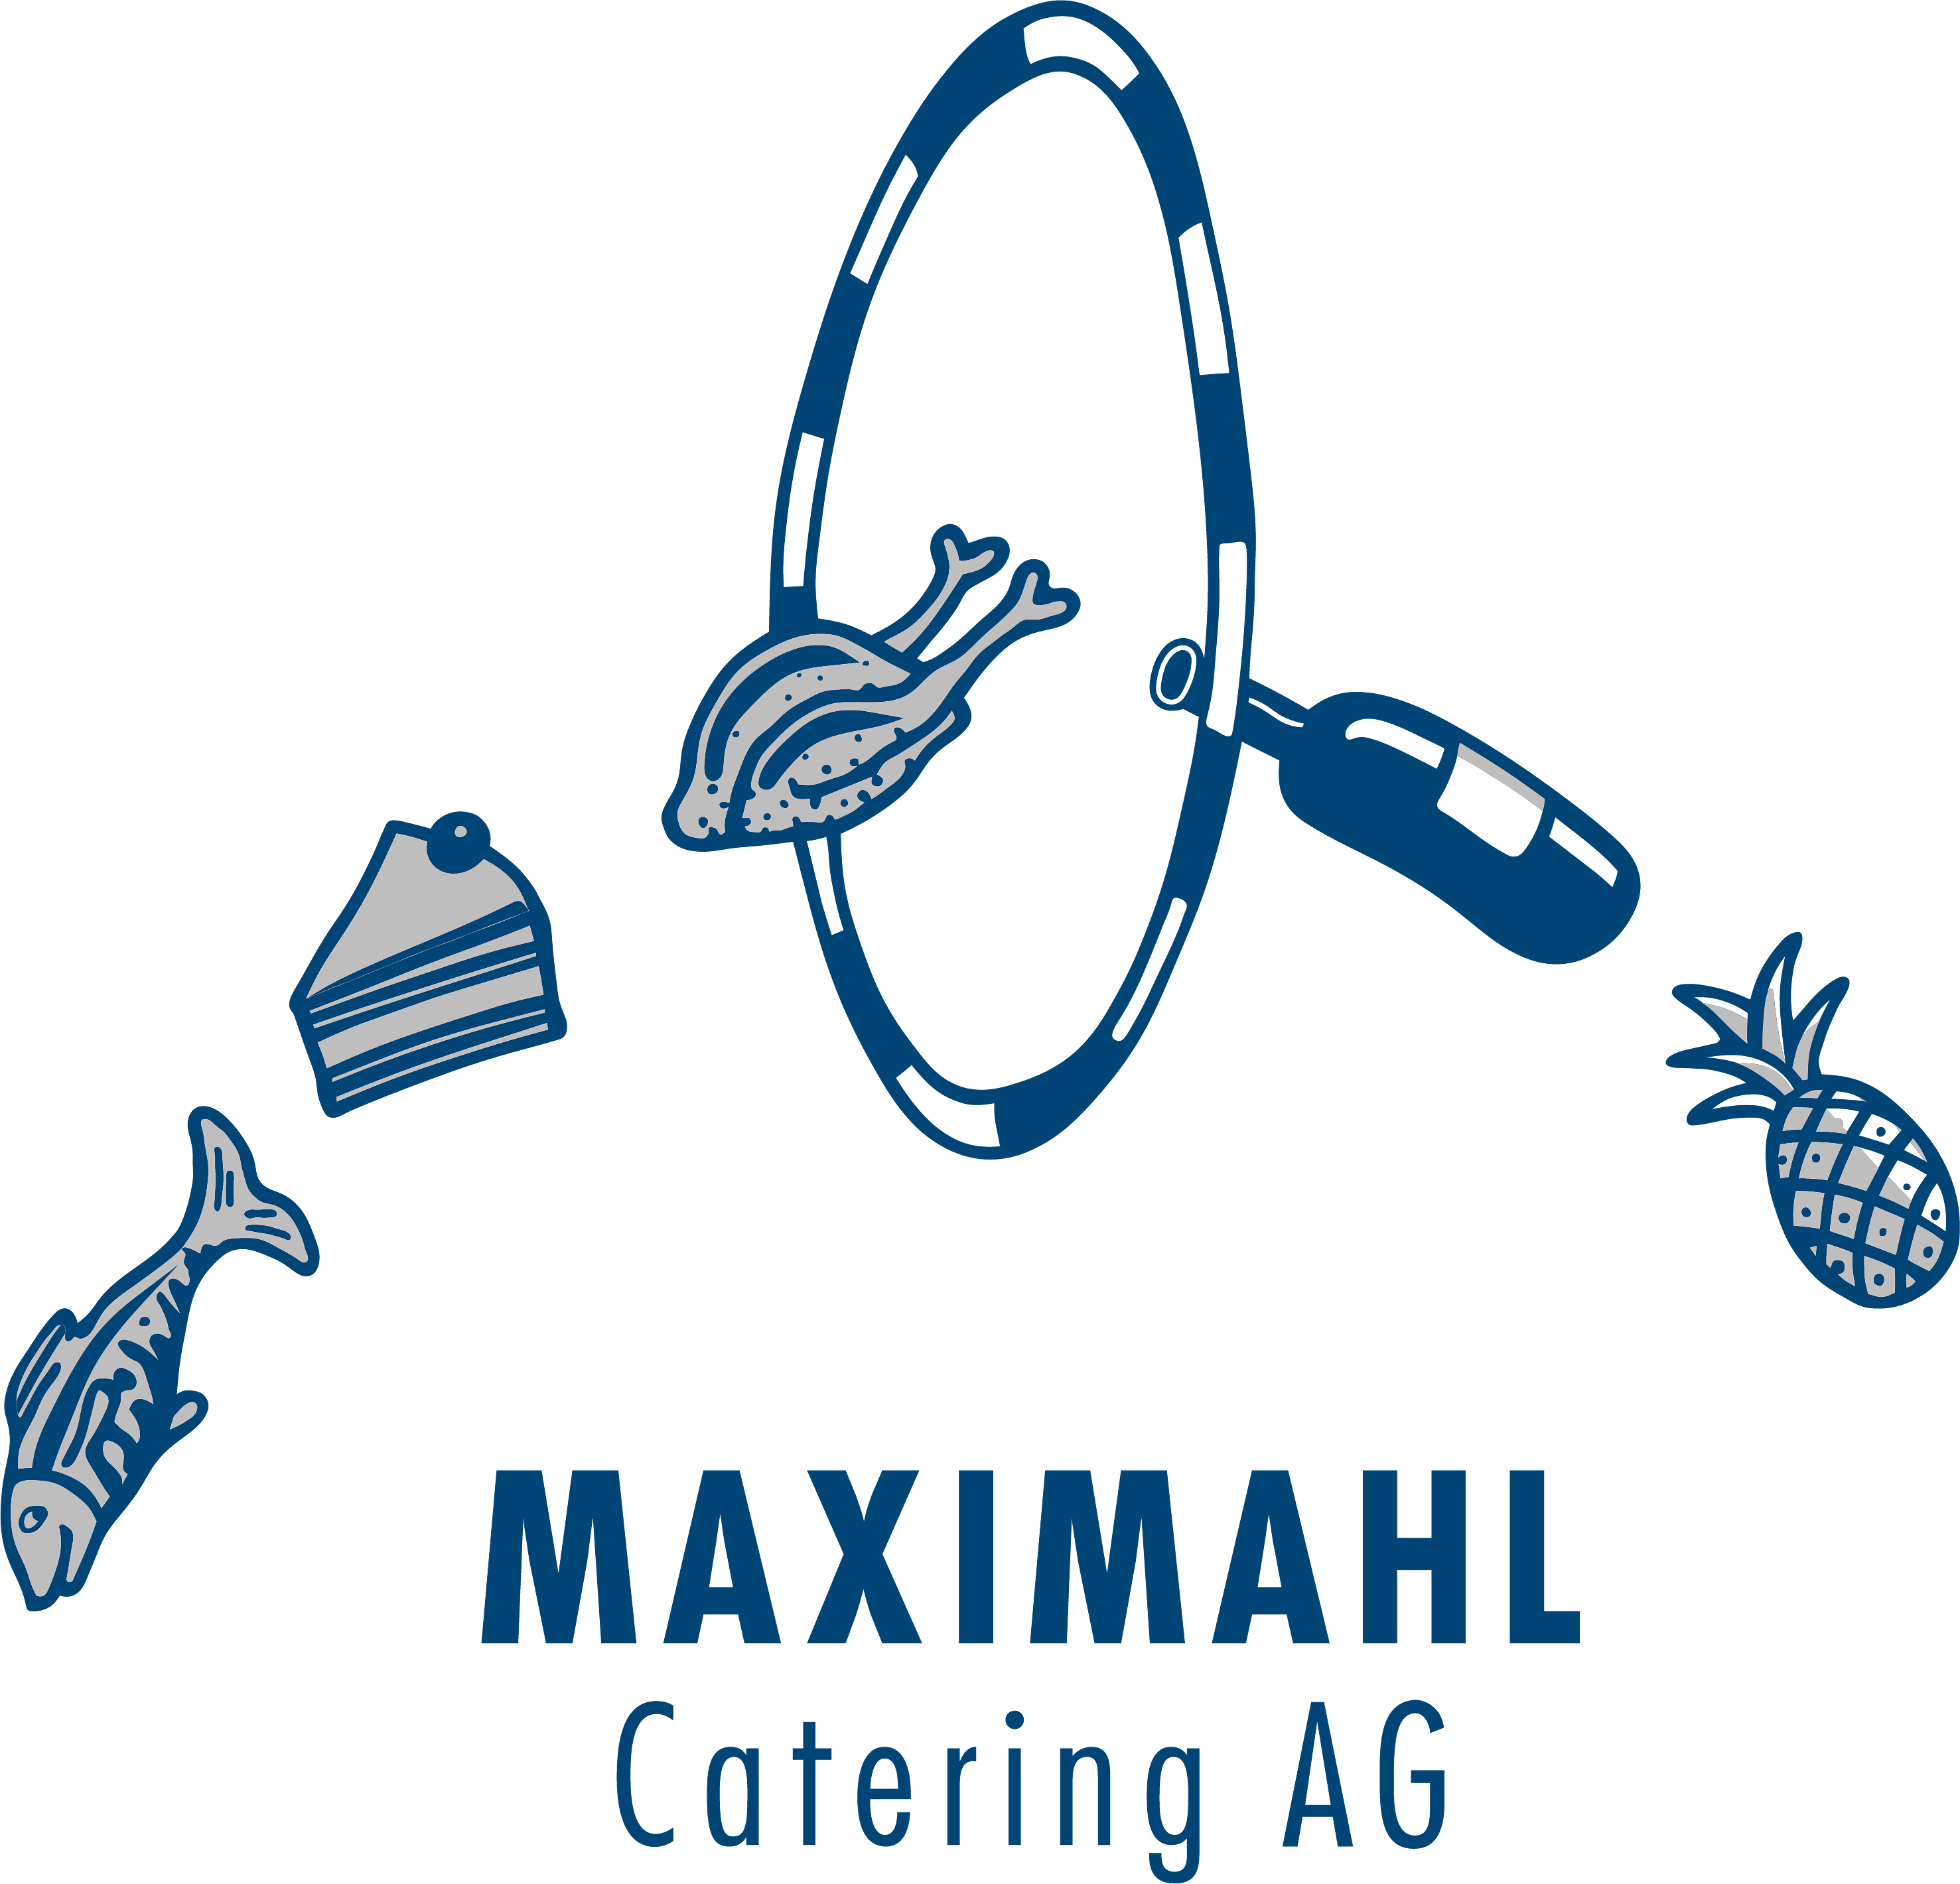 MAXIMAHL Catering AG